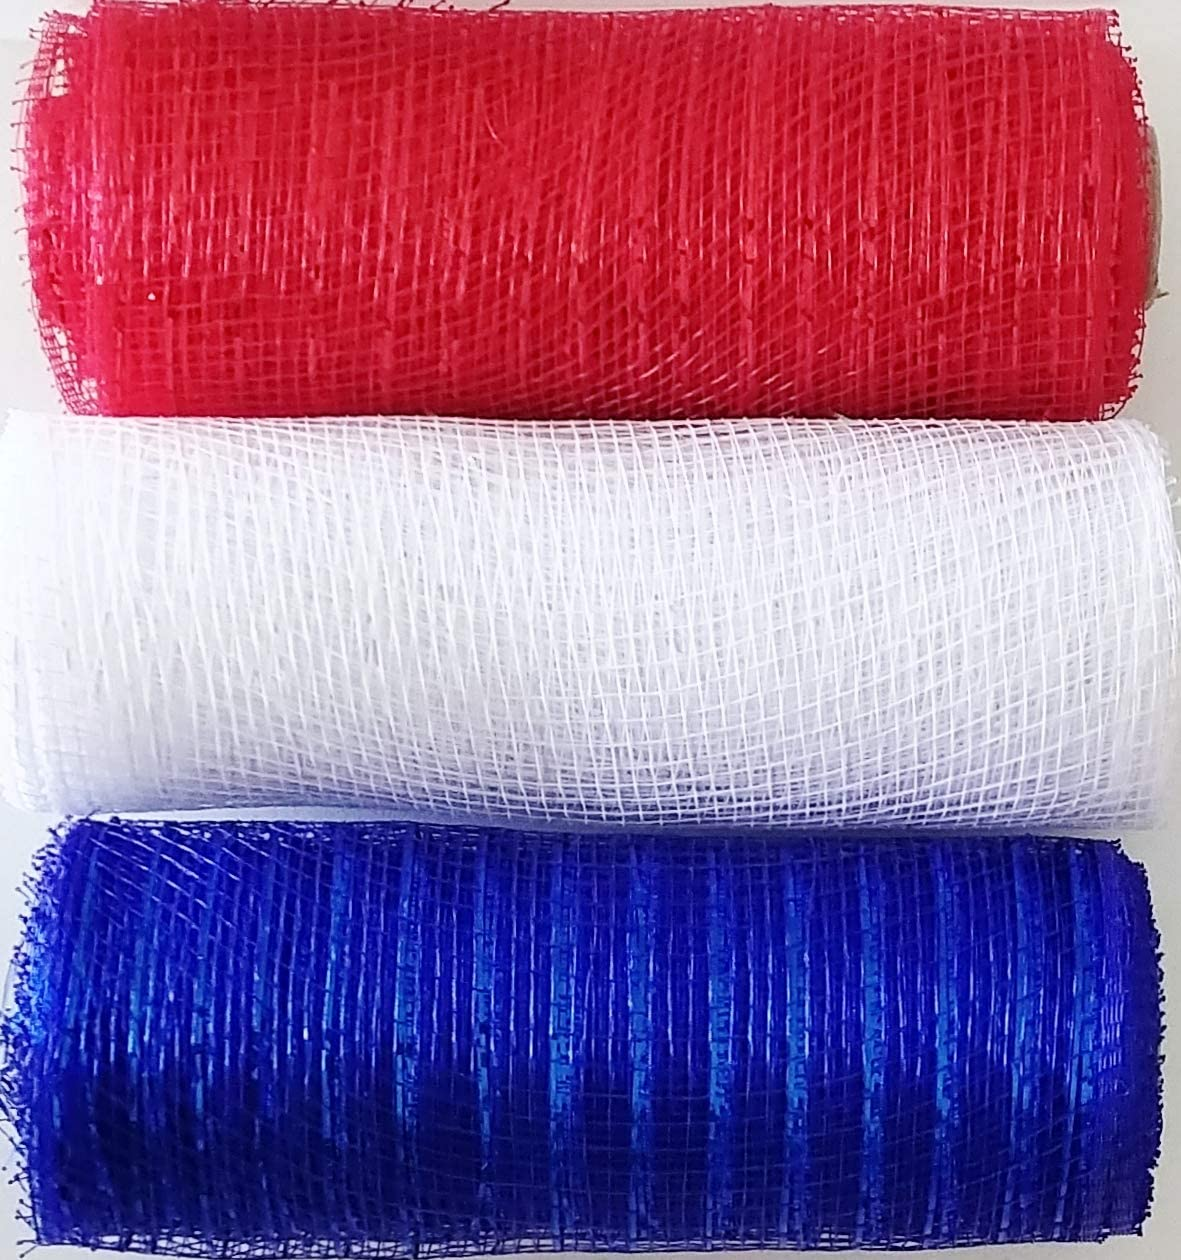 Set of 3 Red White and Blue Colored Tinsel Accent Deco Mesh Ribbon - Patriotic American Decor USA (Decorative, Craft, DIY, Crafting, Wreath Making, Bows, Centerpiece, Floral Bouquet, Gift Wrapping)